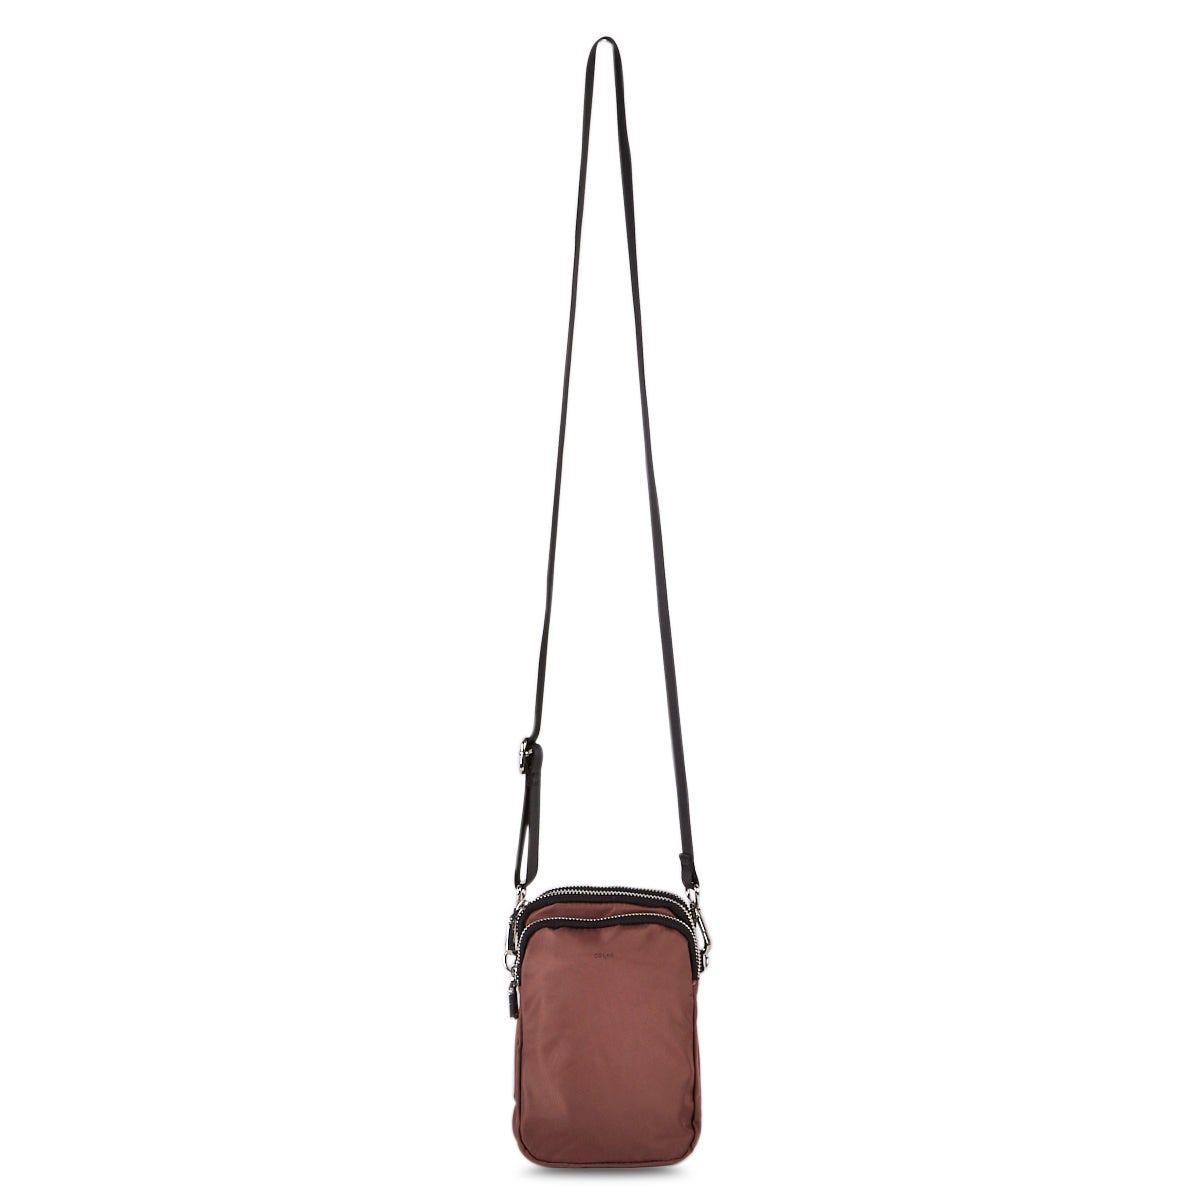 Lds sienna compartment tech crossbody